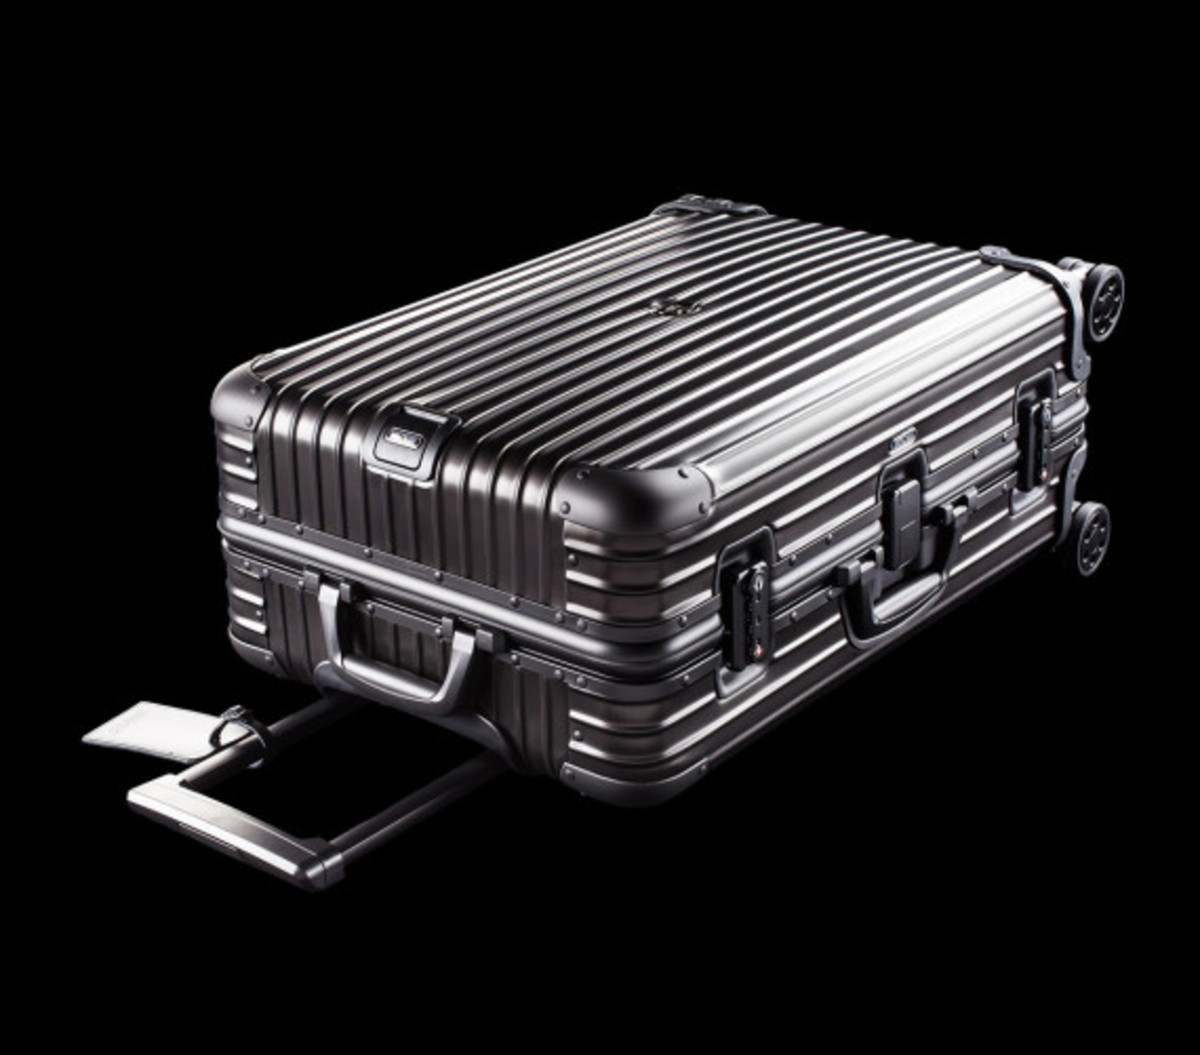 rimowa-and-moncler-luggage-collection-07